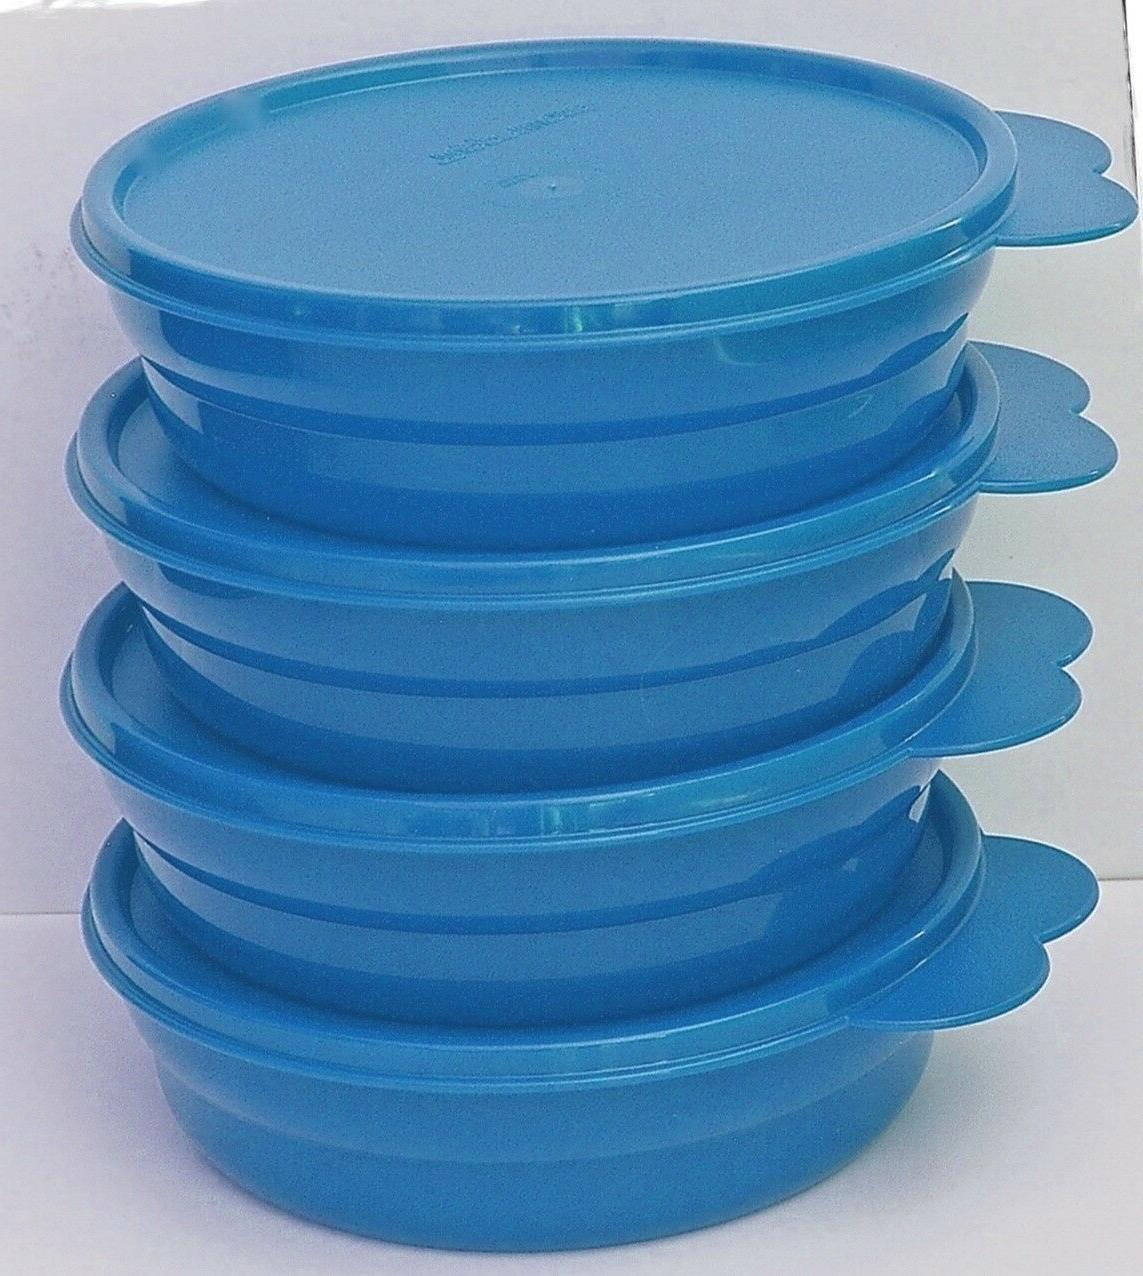 TUPPERWARE CUP BOWL OF 4 BOWLS PICK COLOR